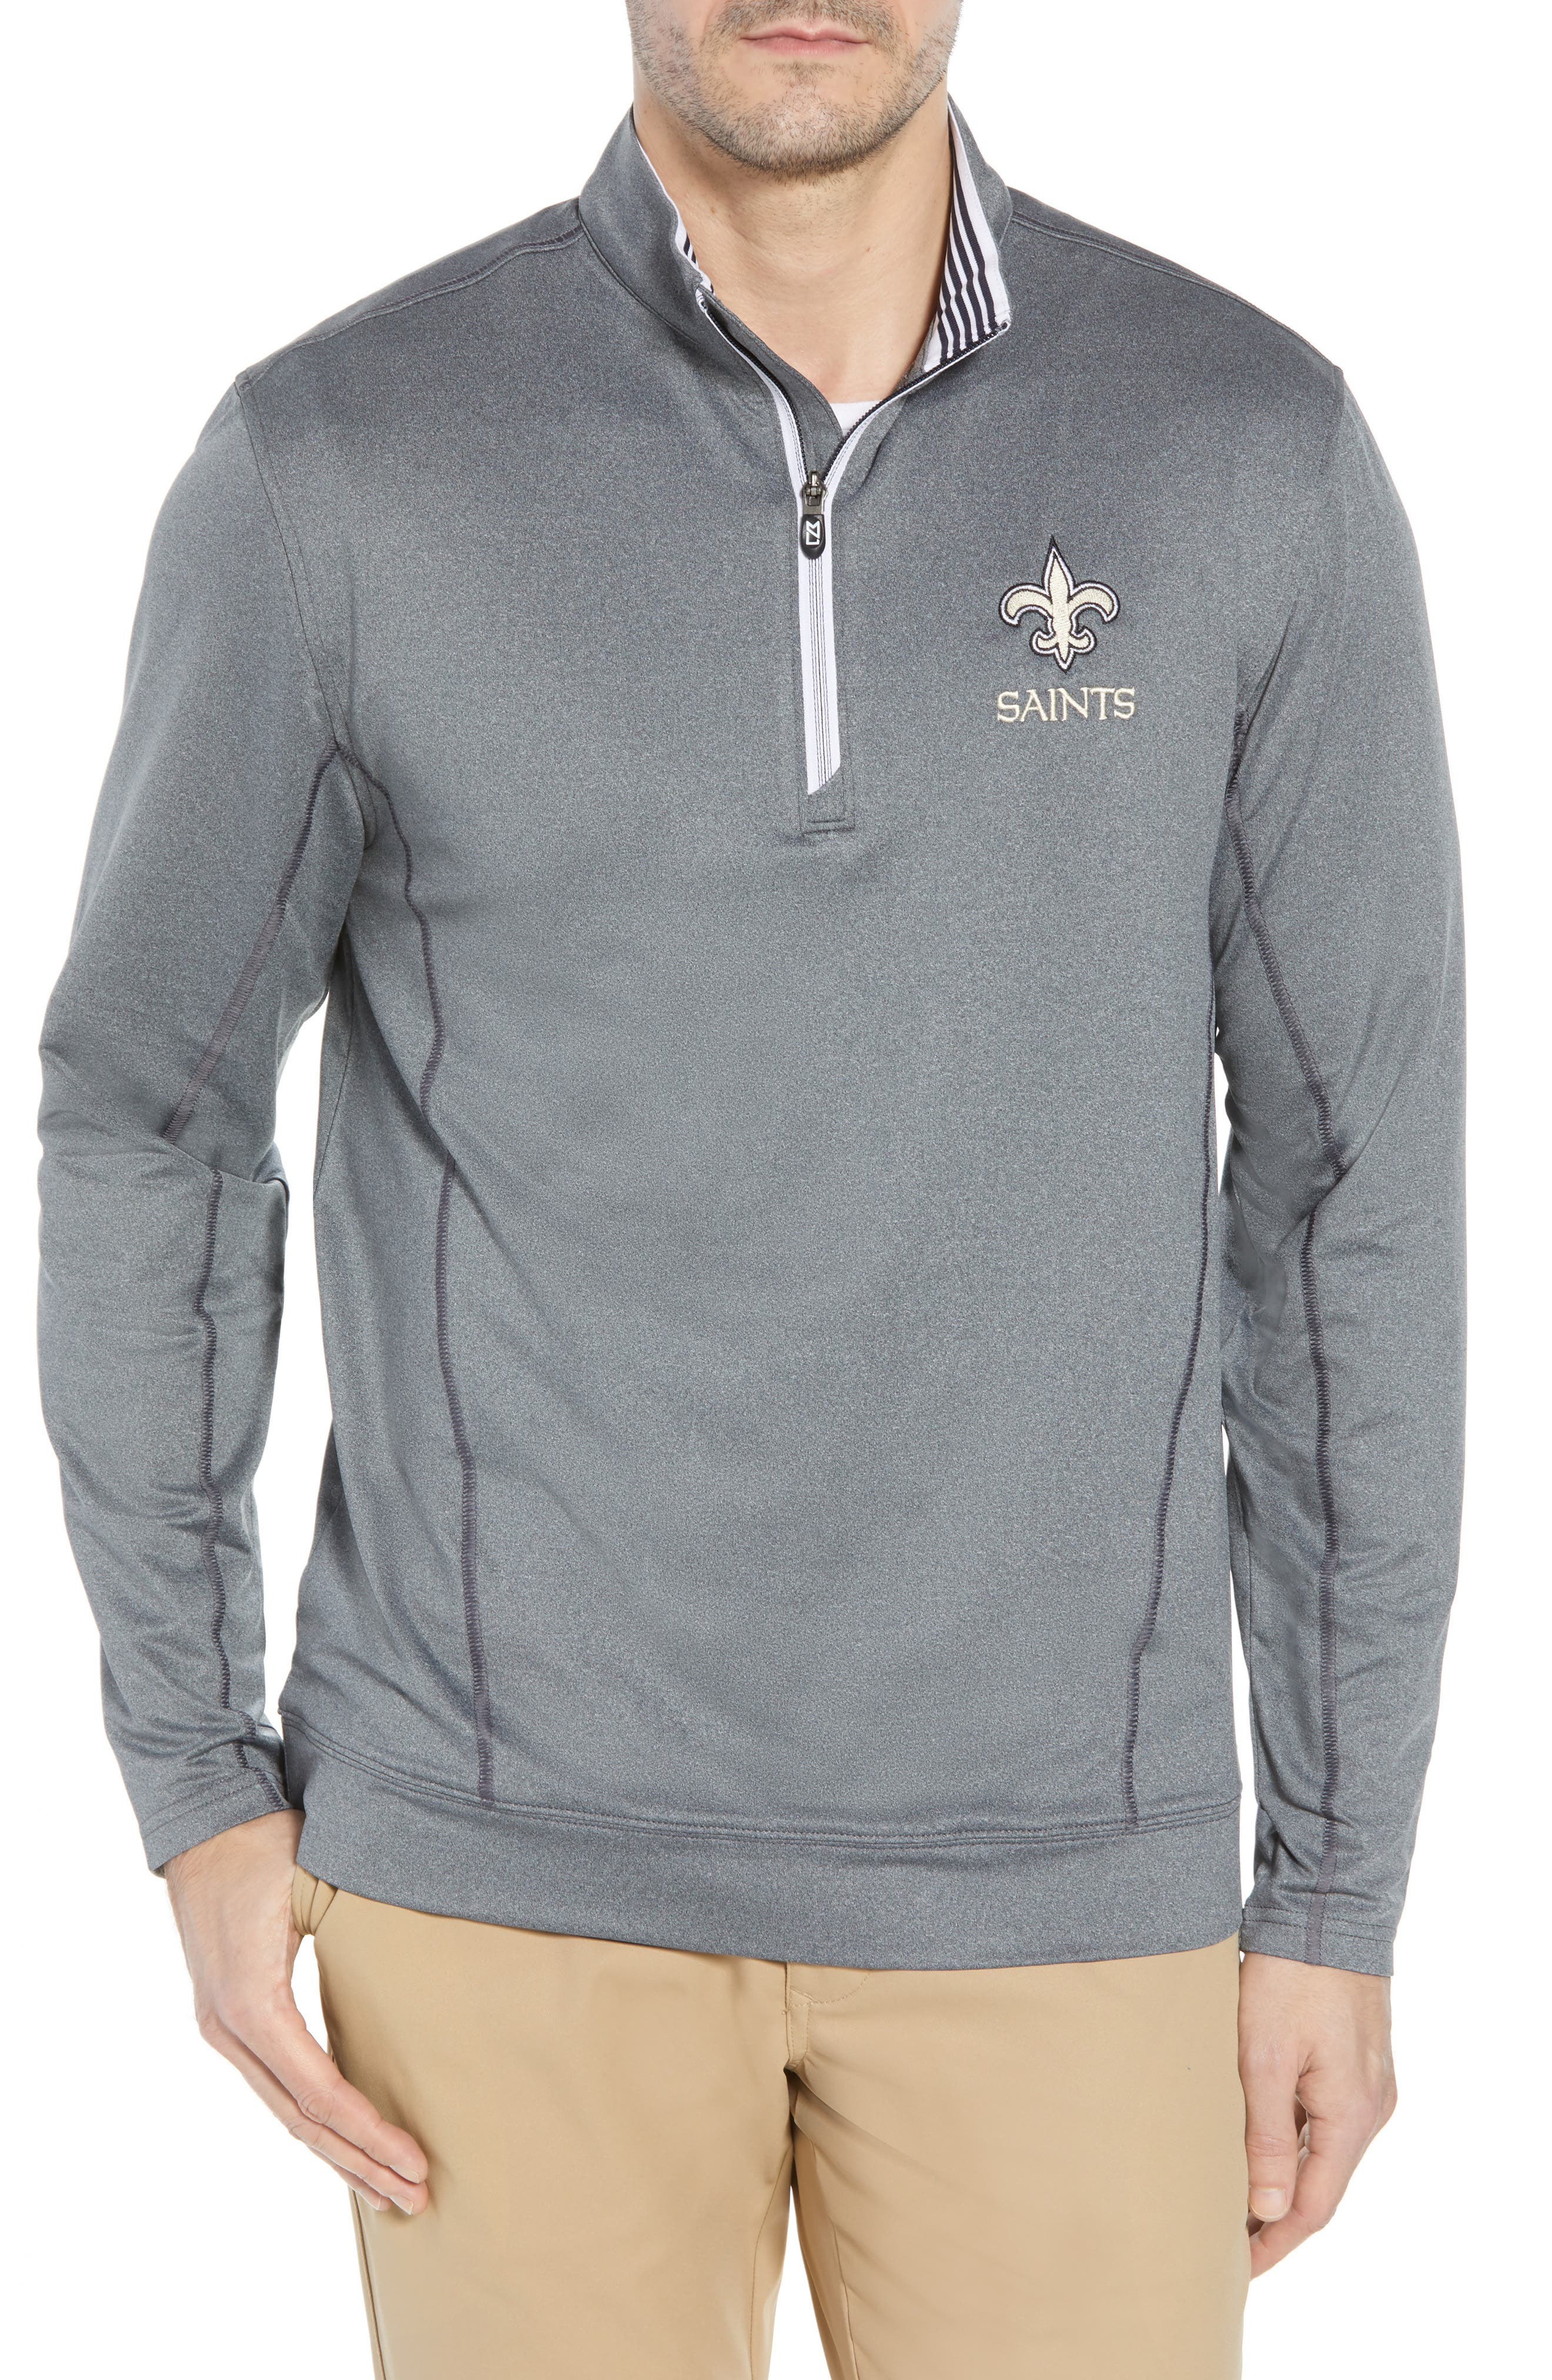 Endurance New Orleans Saints Regular Fit Pullover,                             Main thumbnail 1, color,                             CHARCOAL HEATHER